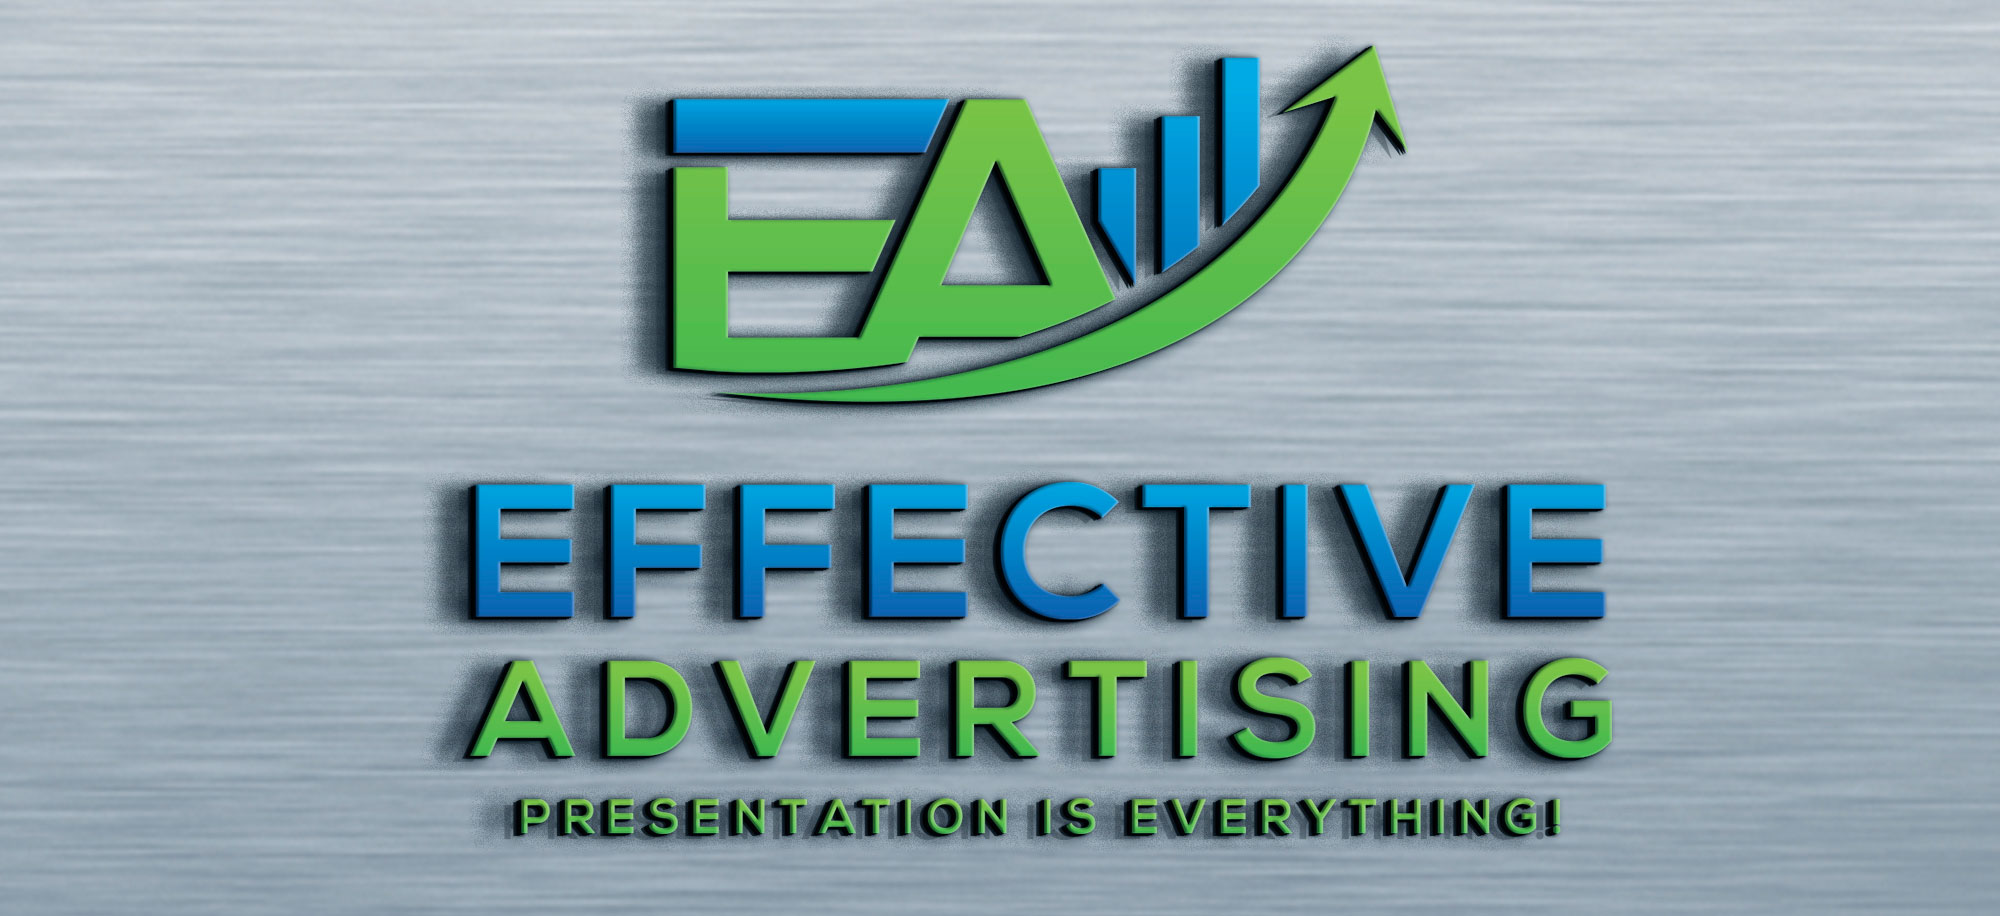 Effective Advertising:  Presentation is Everything!